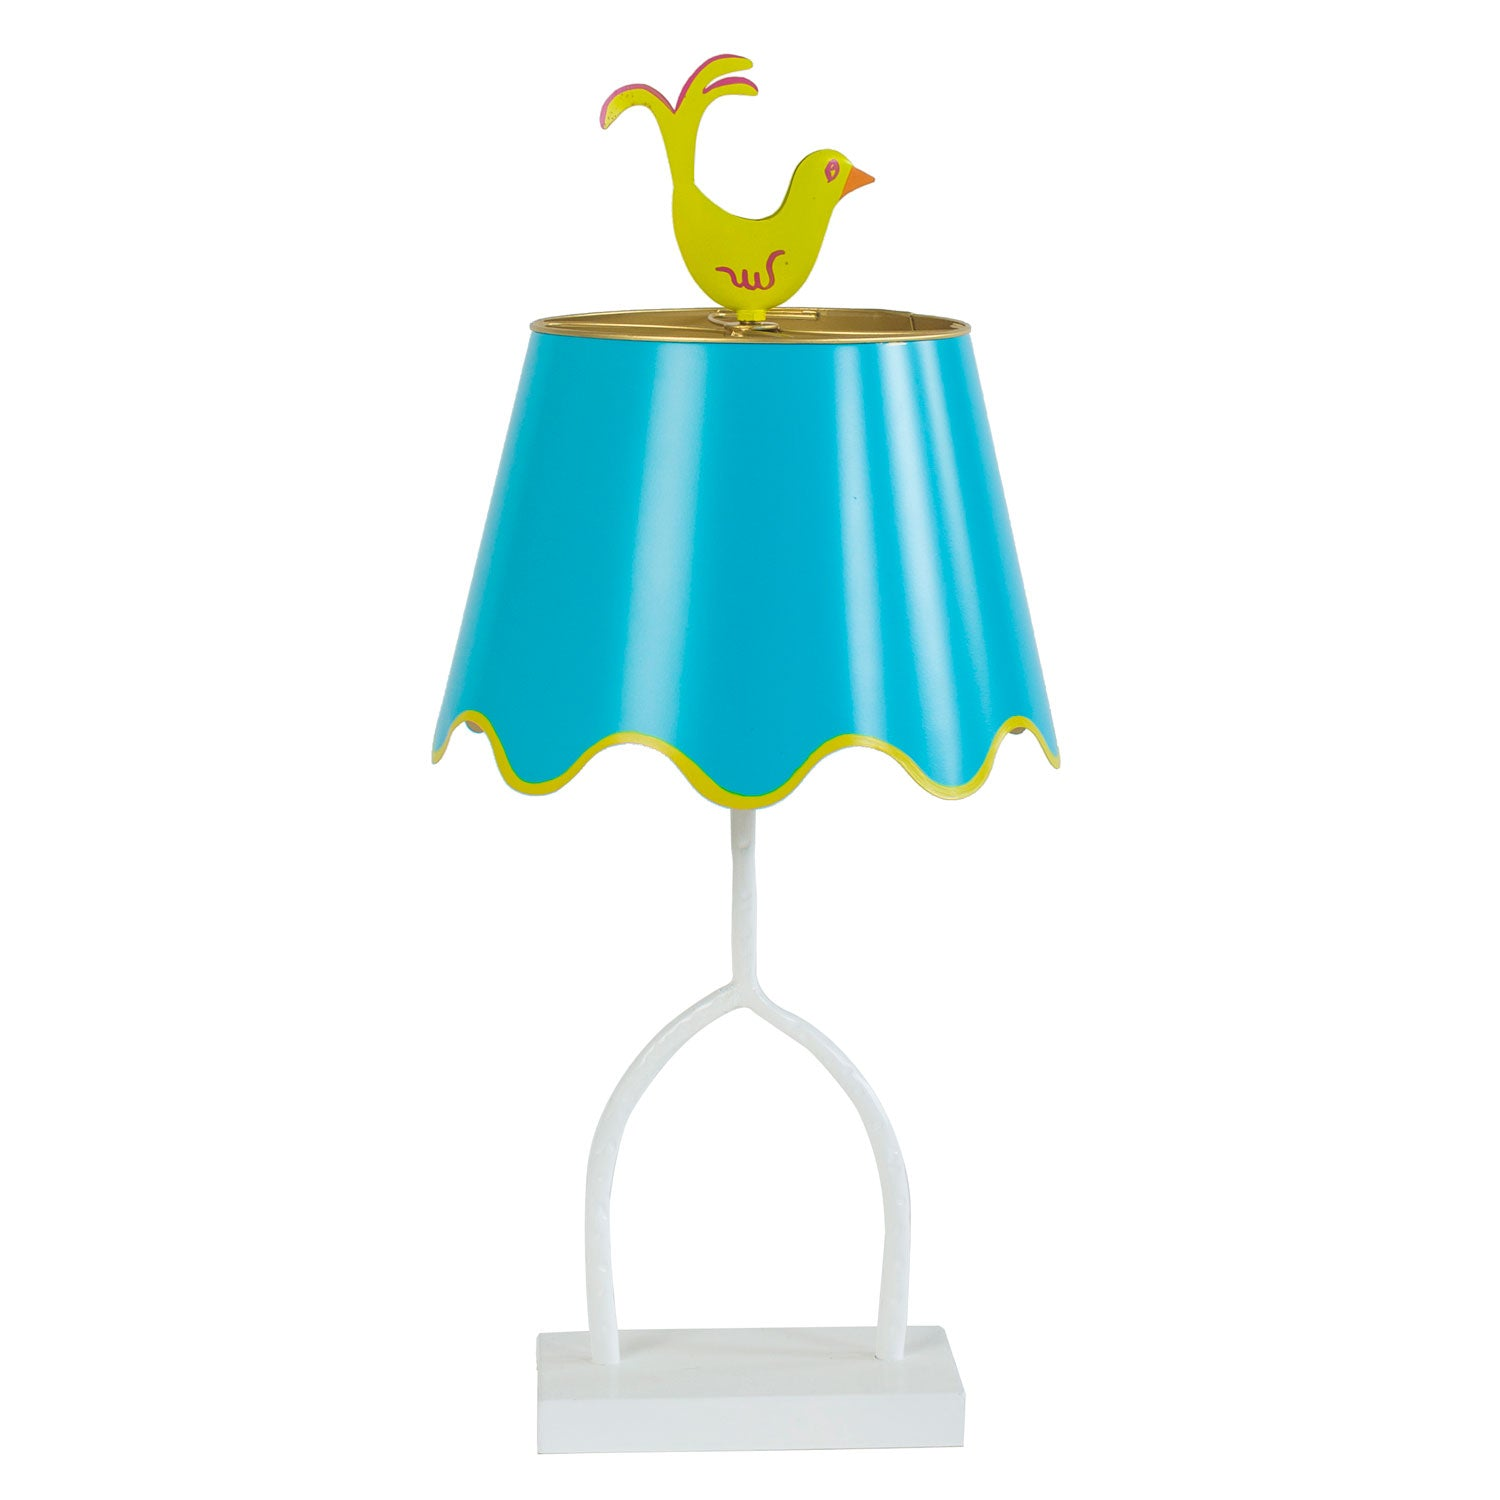 Dash tole table lamp with birdie finial by stray dog designs